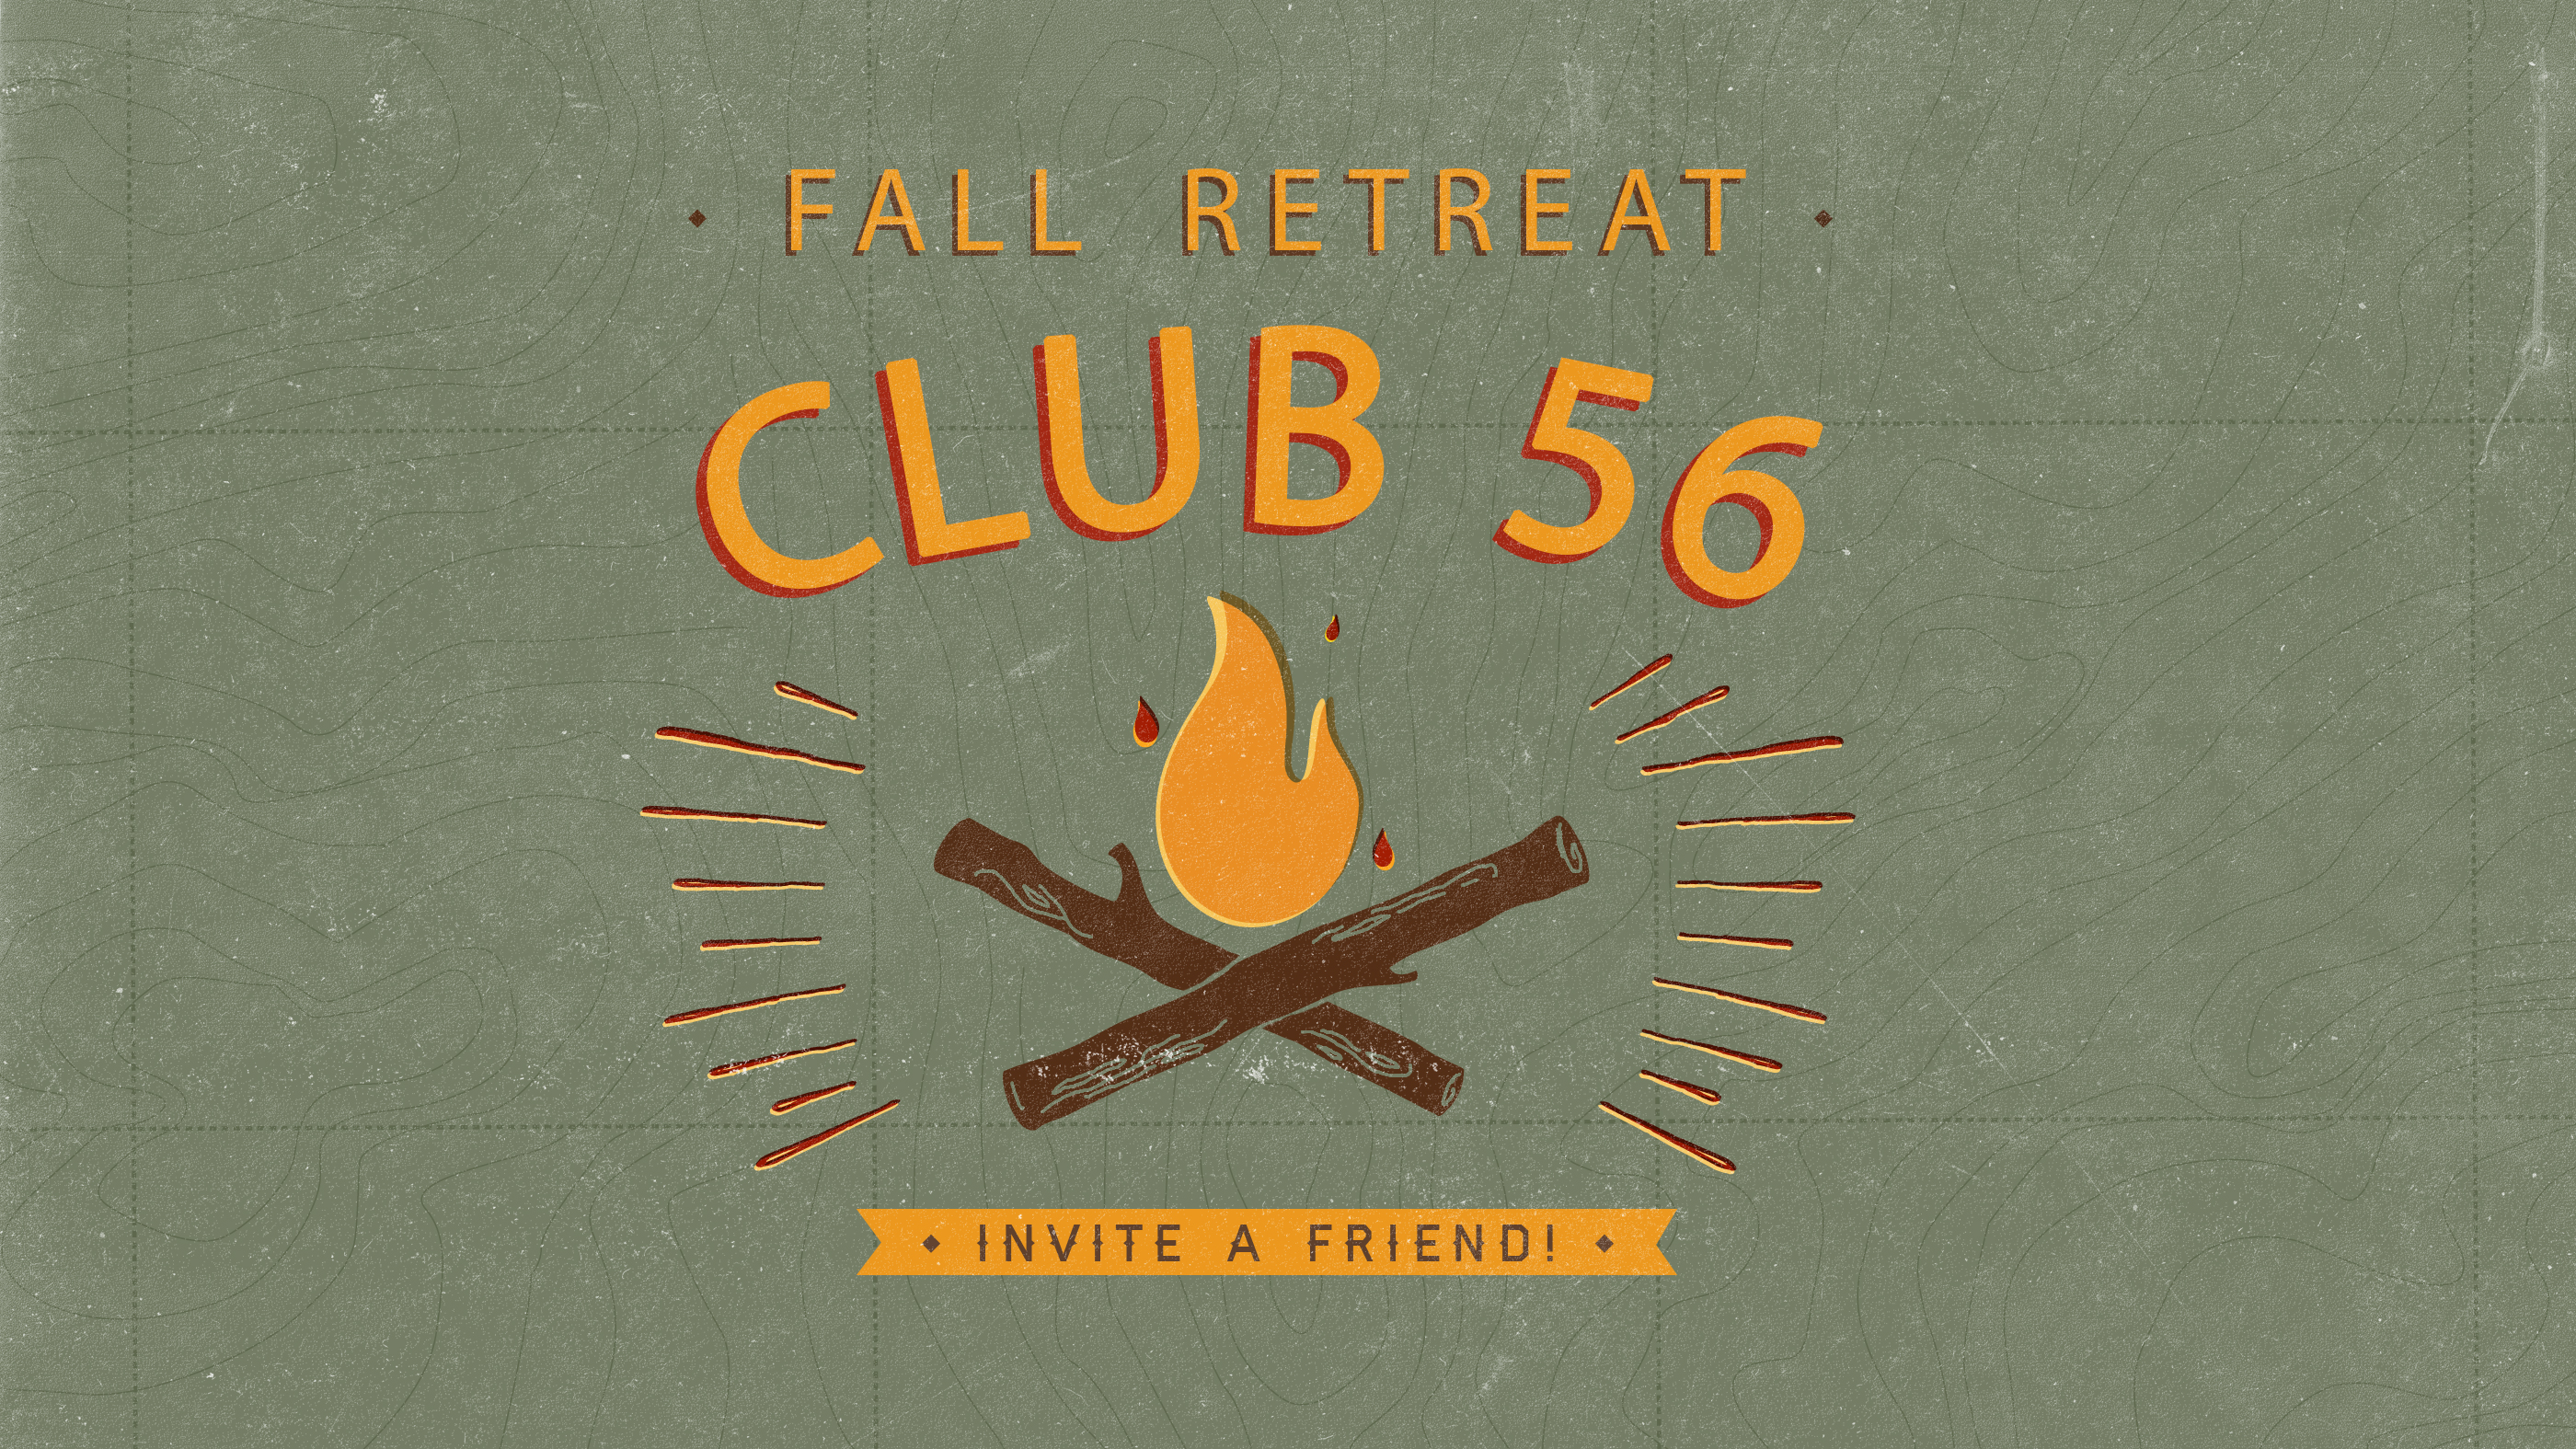 CLUB 56 FALL RETREAT.jpg